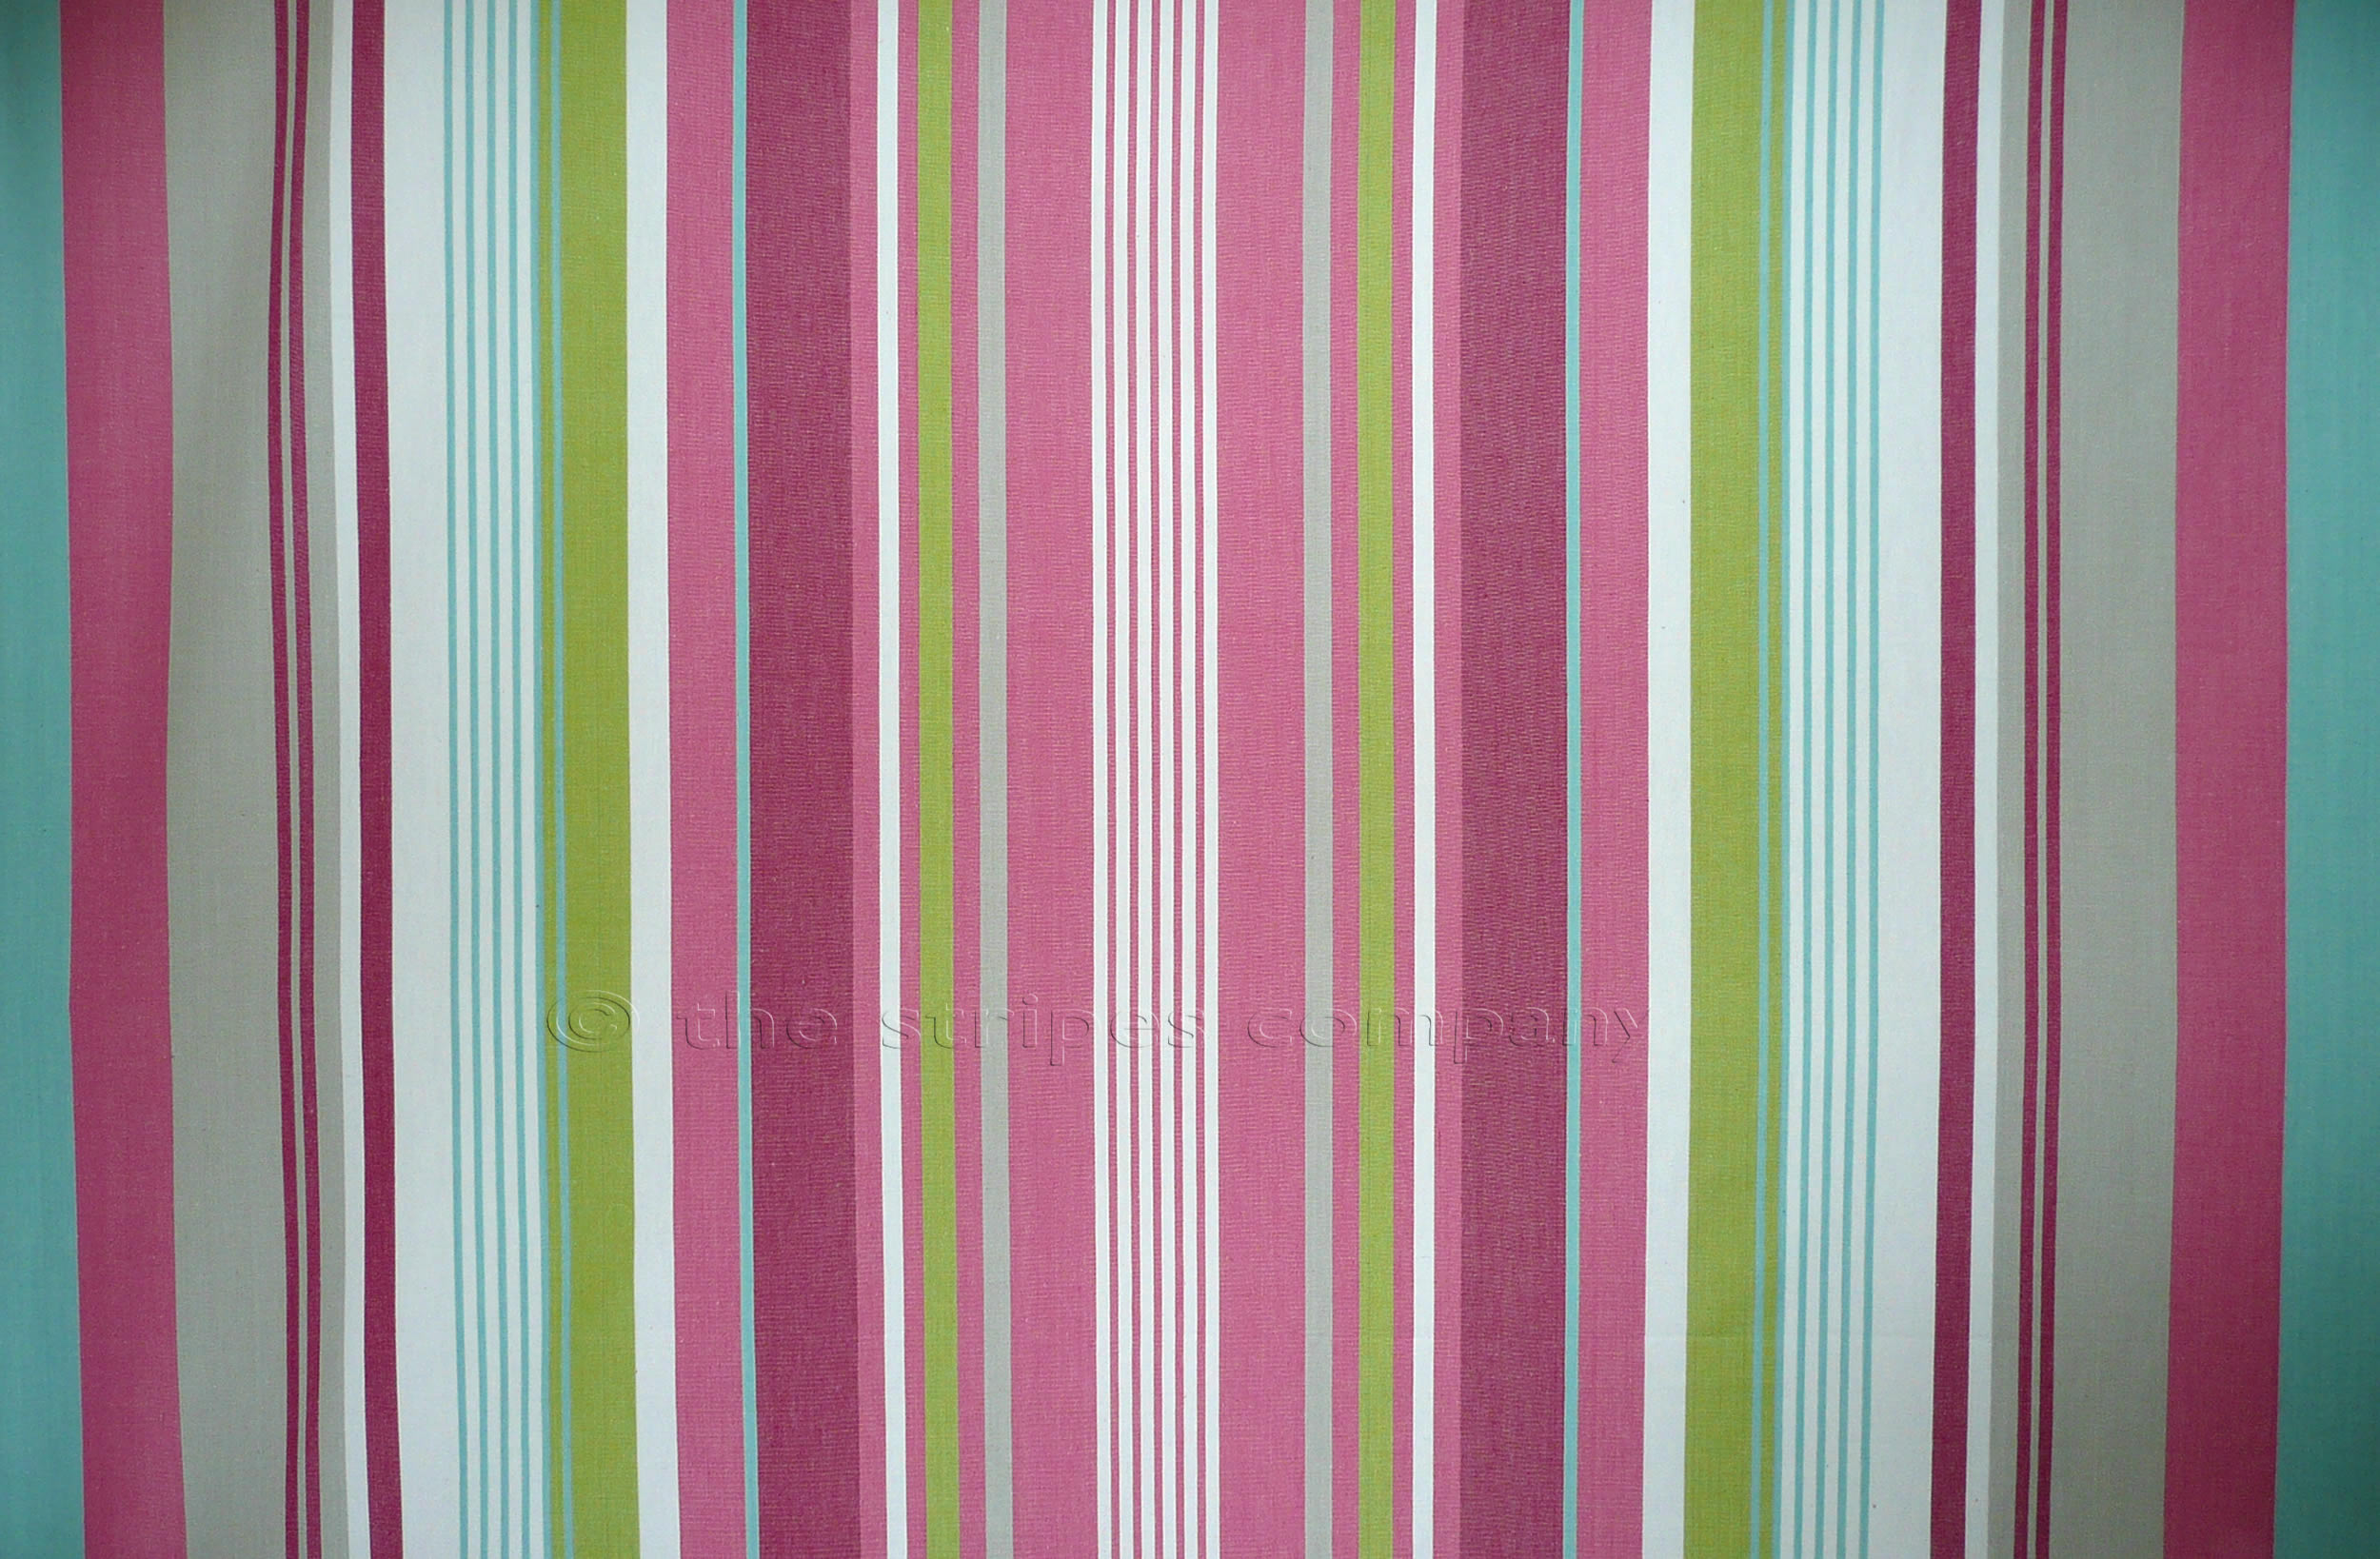 Pink Striped Fabrics Baby Pink Grey White Baby Blue Stripes The